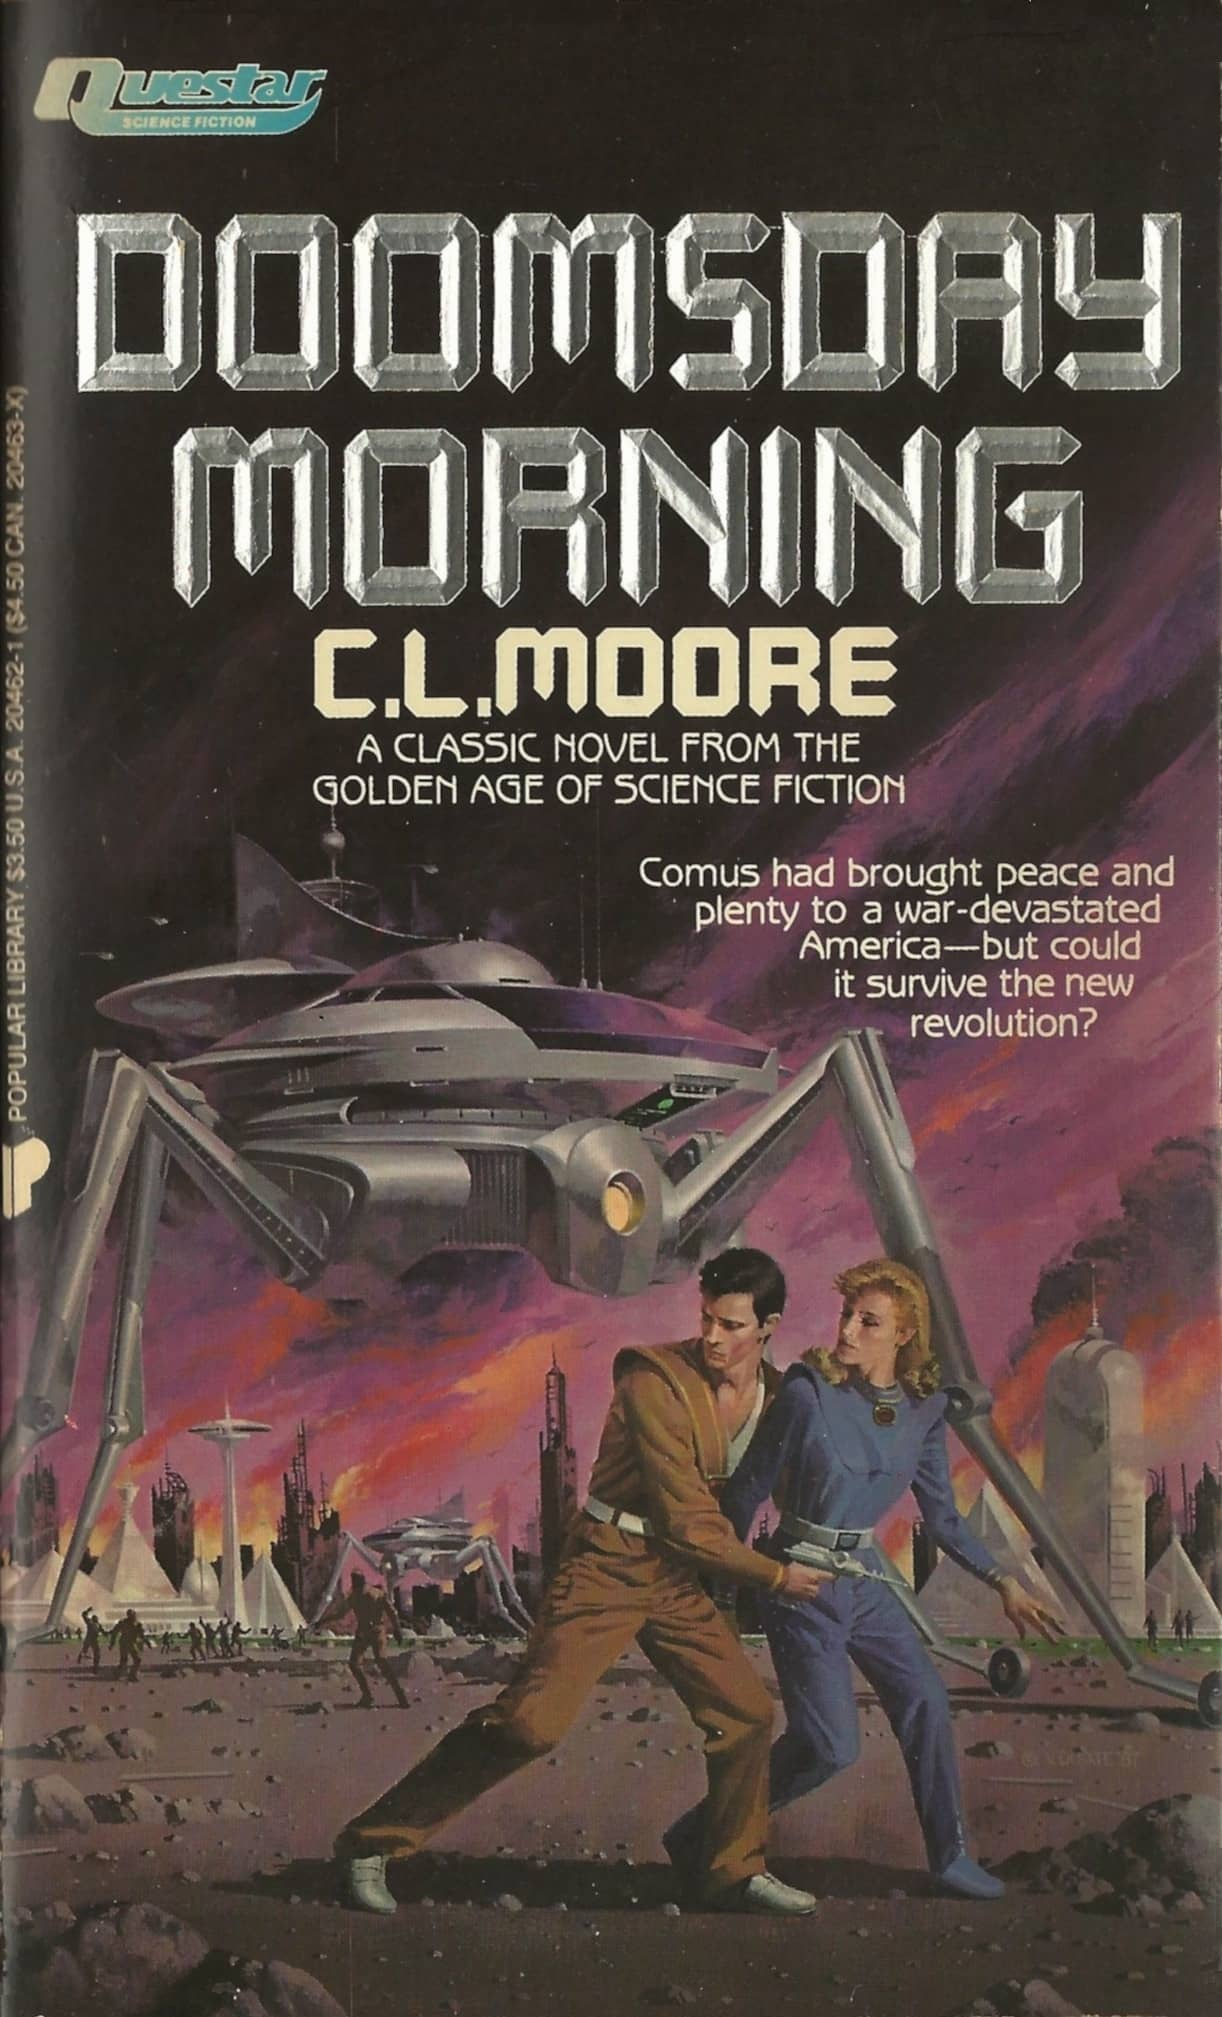 Vintage Treasures: Doomsday Morning by C.L. Moore